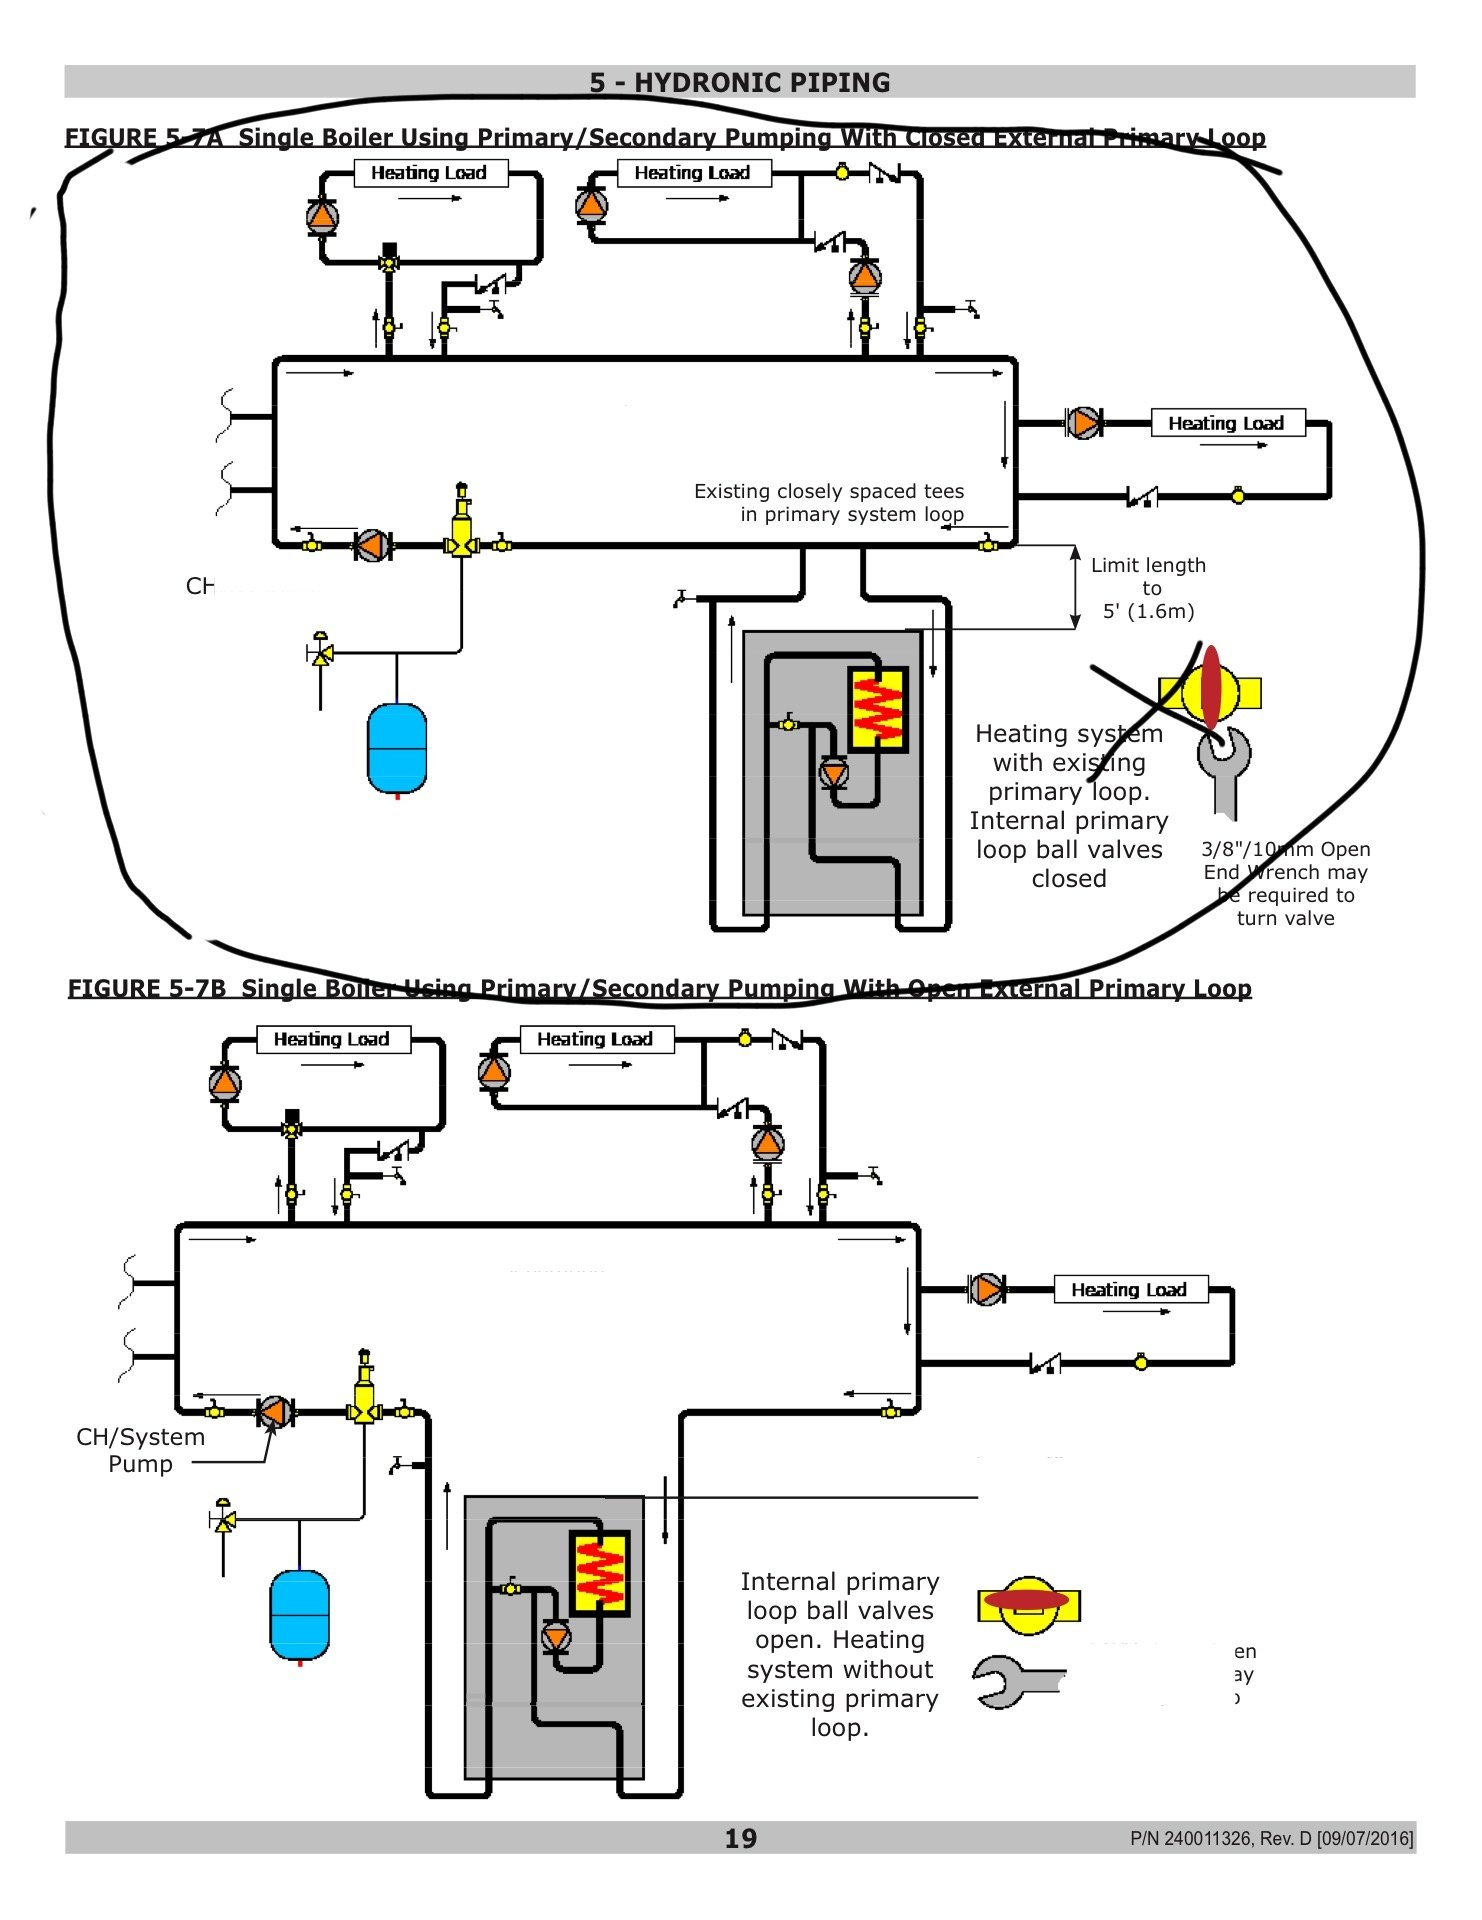 WRG-2891] Piping Diagram For Radiant Floor Heat on